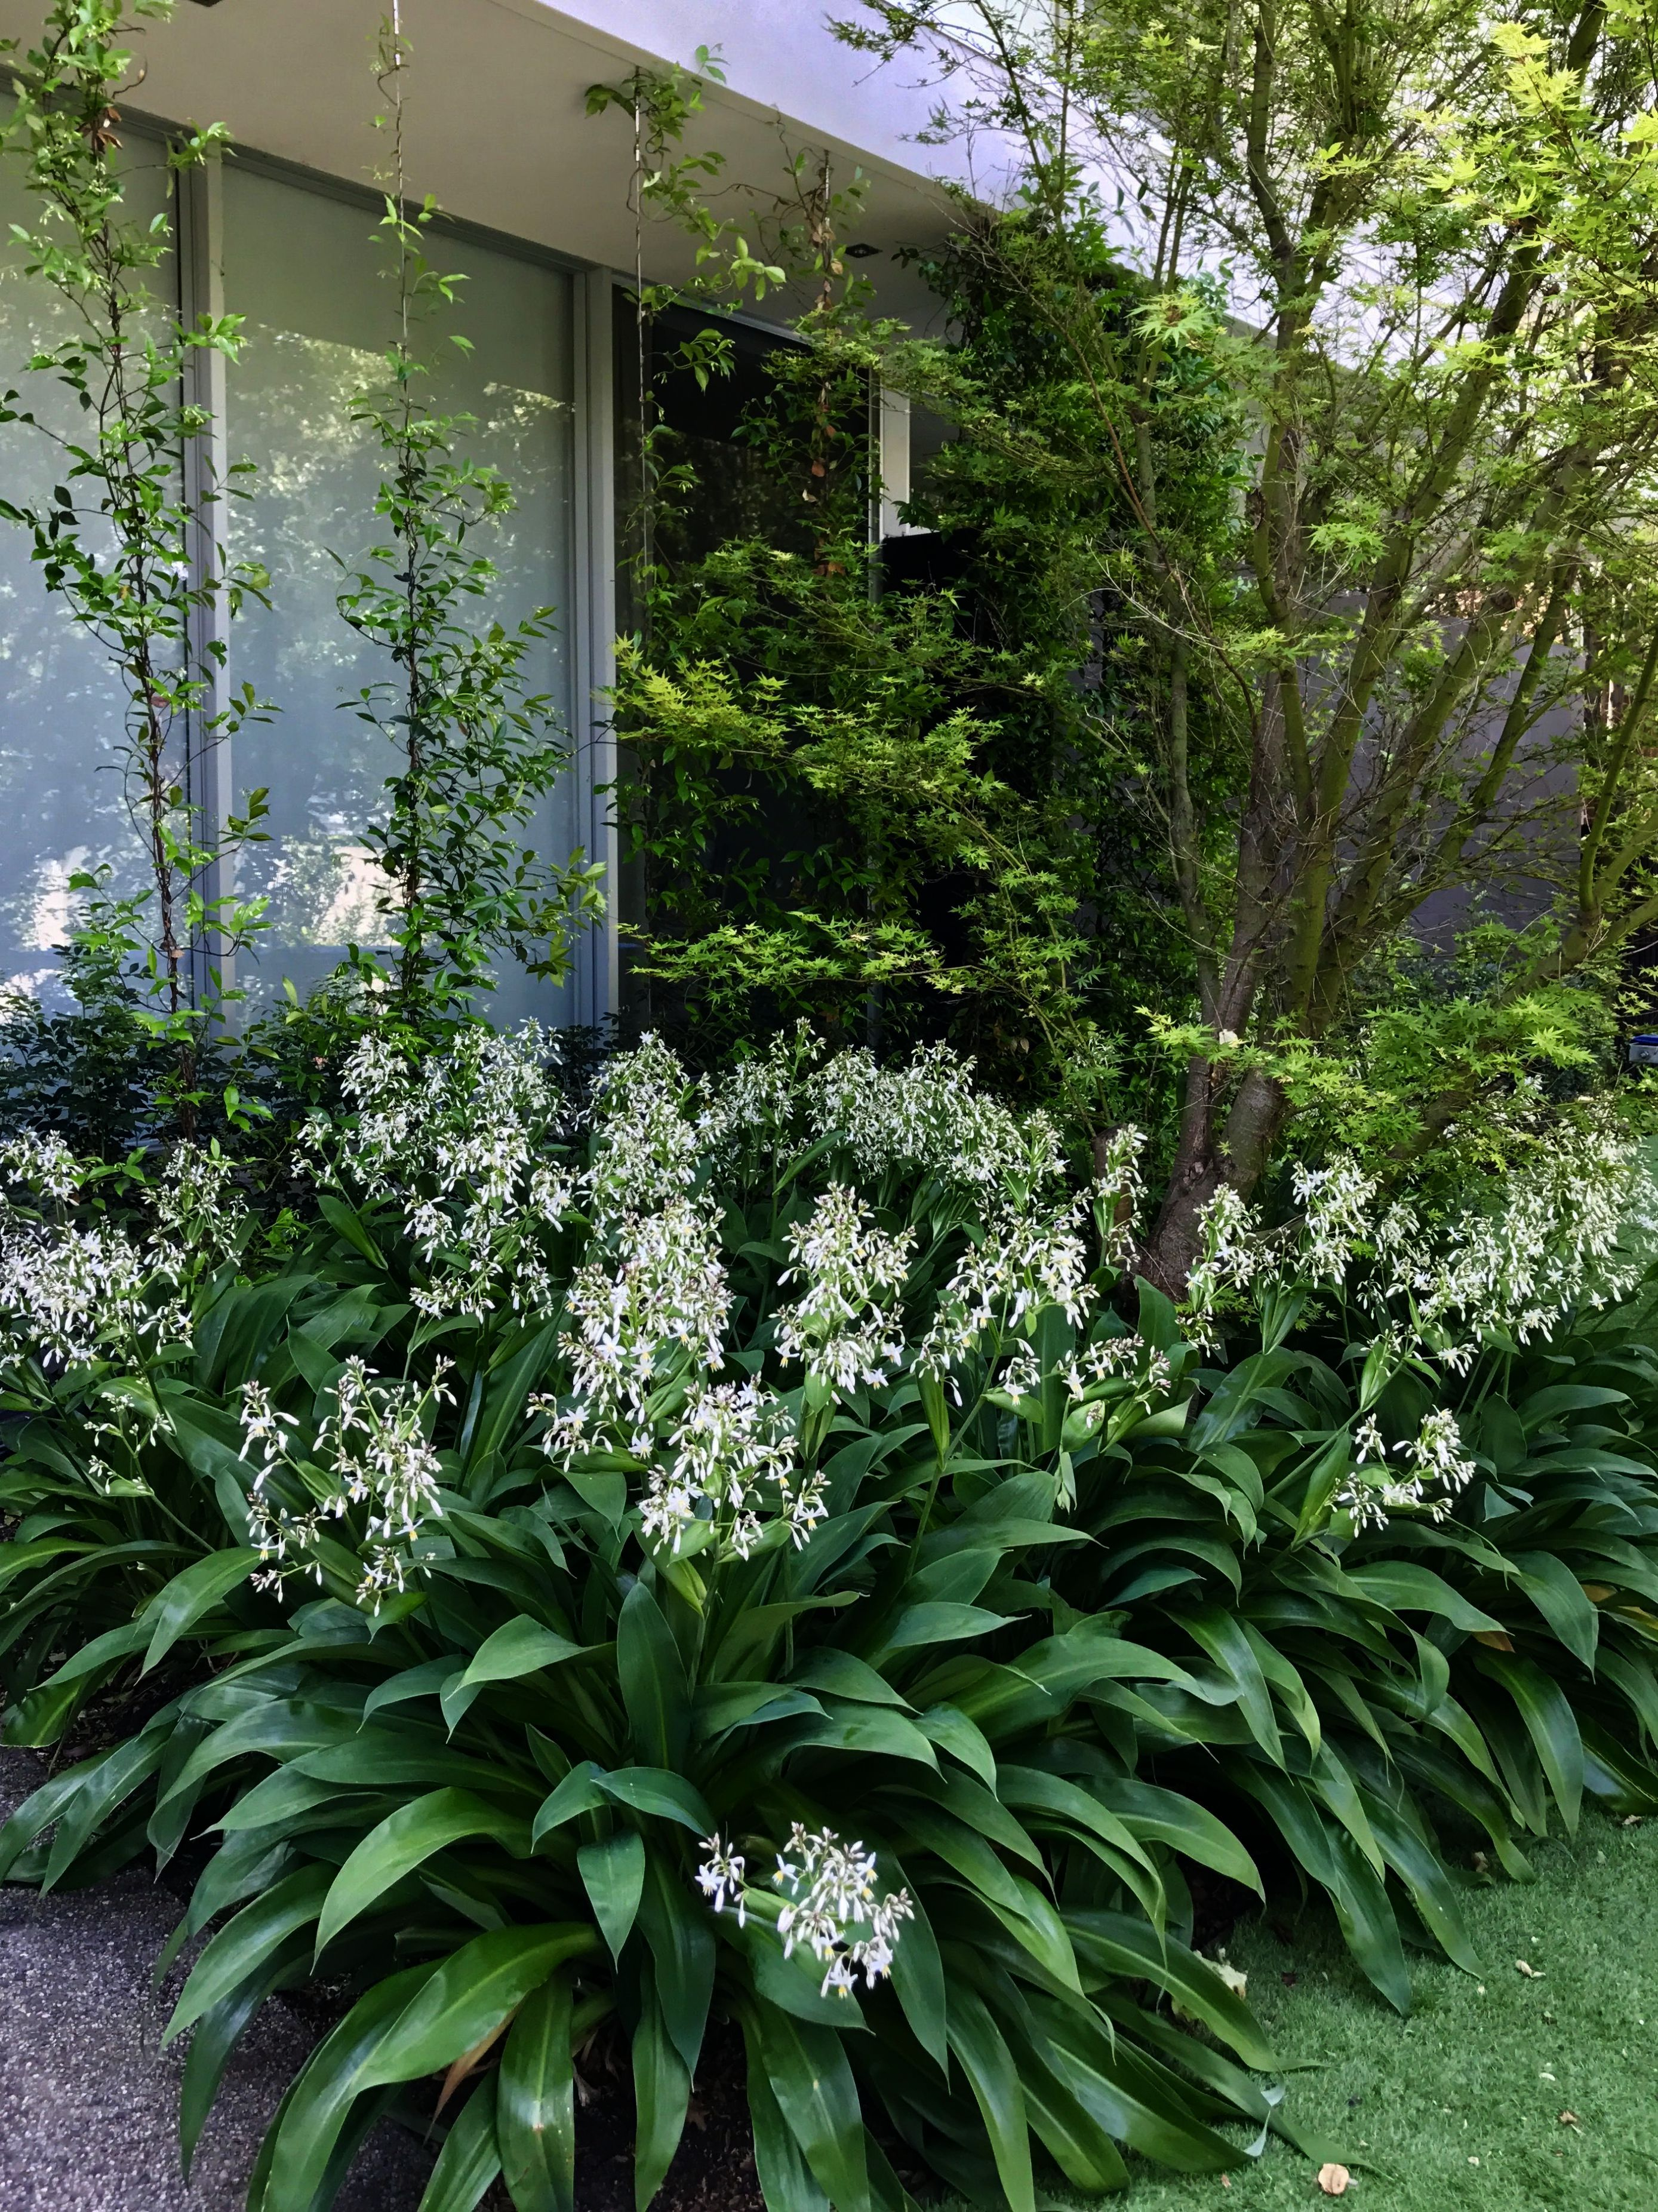 How To Match The Style Of Your Home With Your Landscape Design